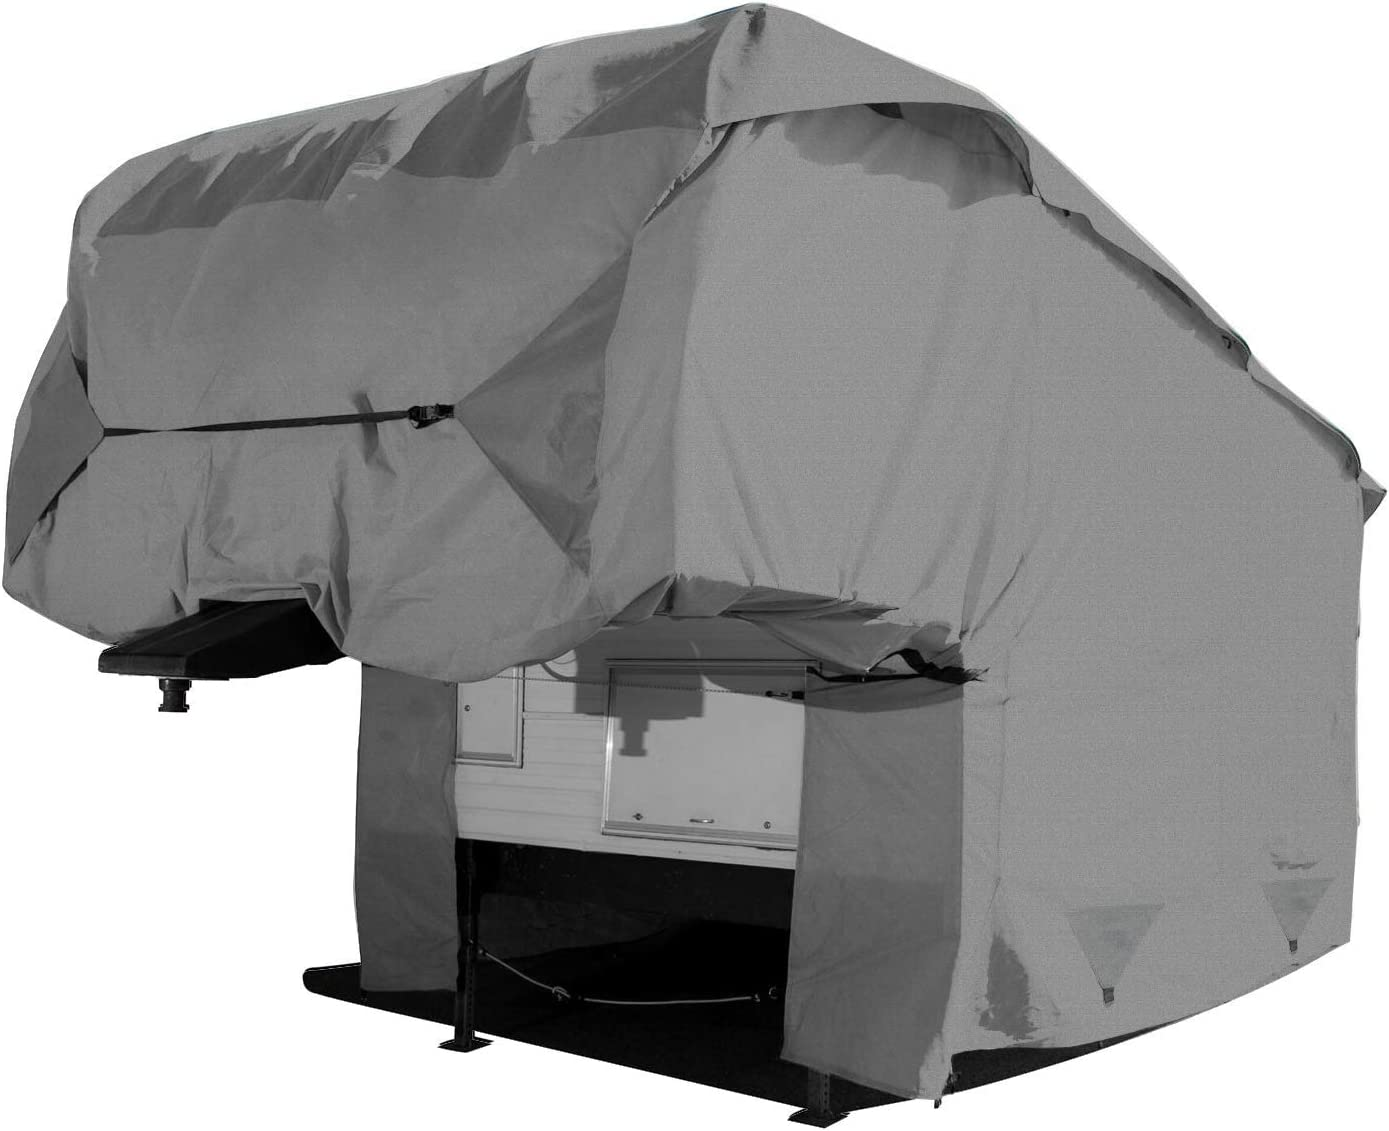 All Weather Proof Outdoor RV Travel Trailer Cover Universal Fit 34 to 37 Long Waterproof Arch Motoring 5 Layers Fifth Wheels Trailer Cover Scratch Resistant UV Protection